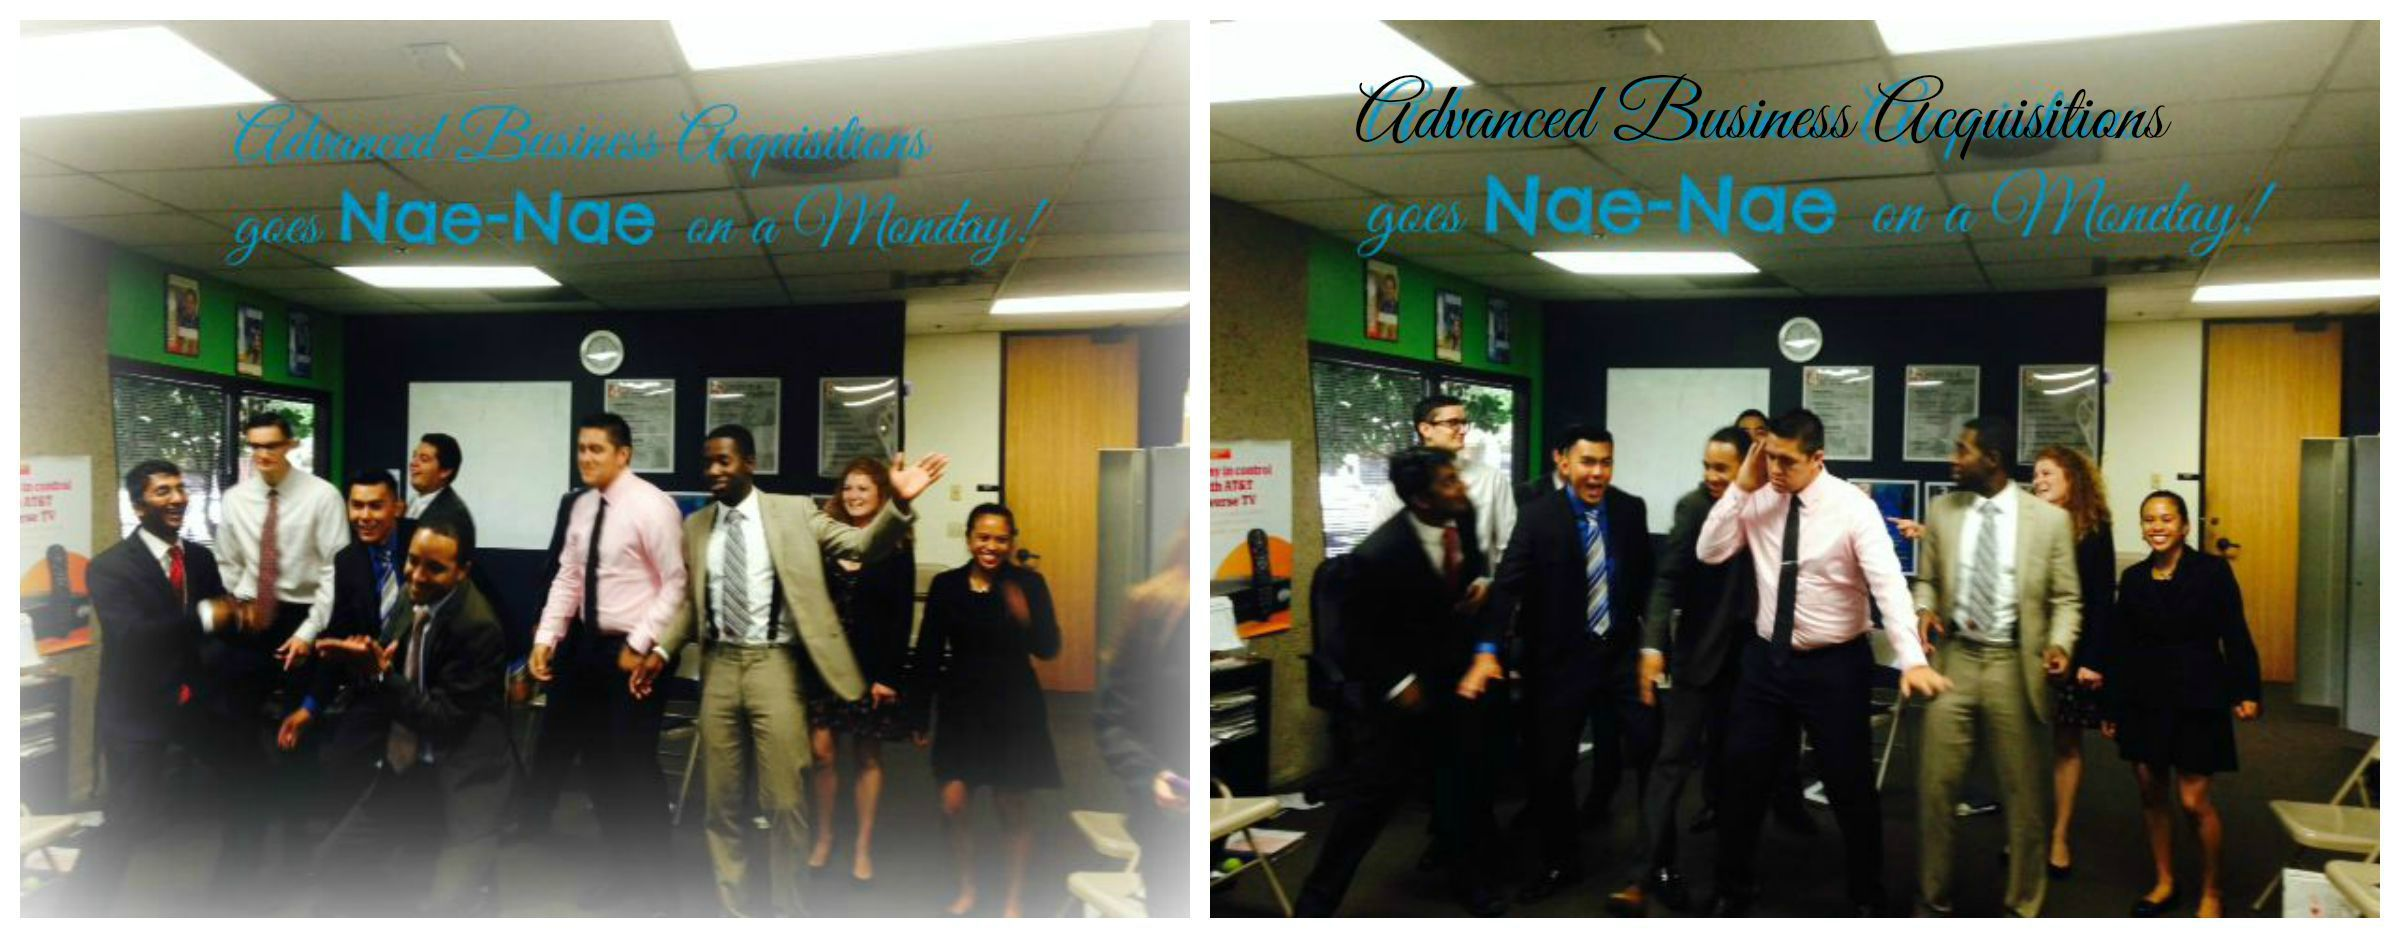 Advanced Business Acquisitions goes NaeNae on a Monday!